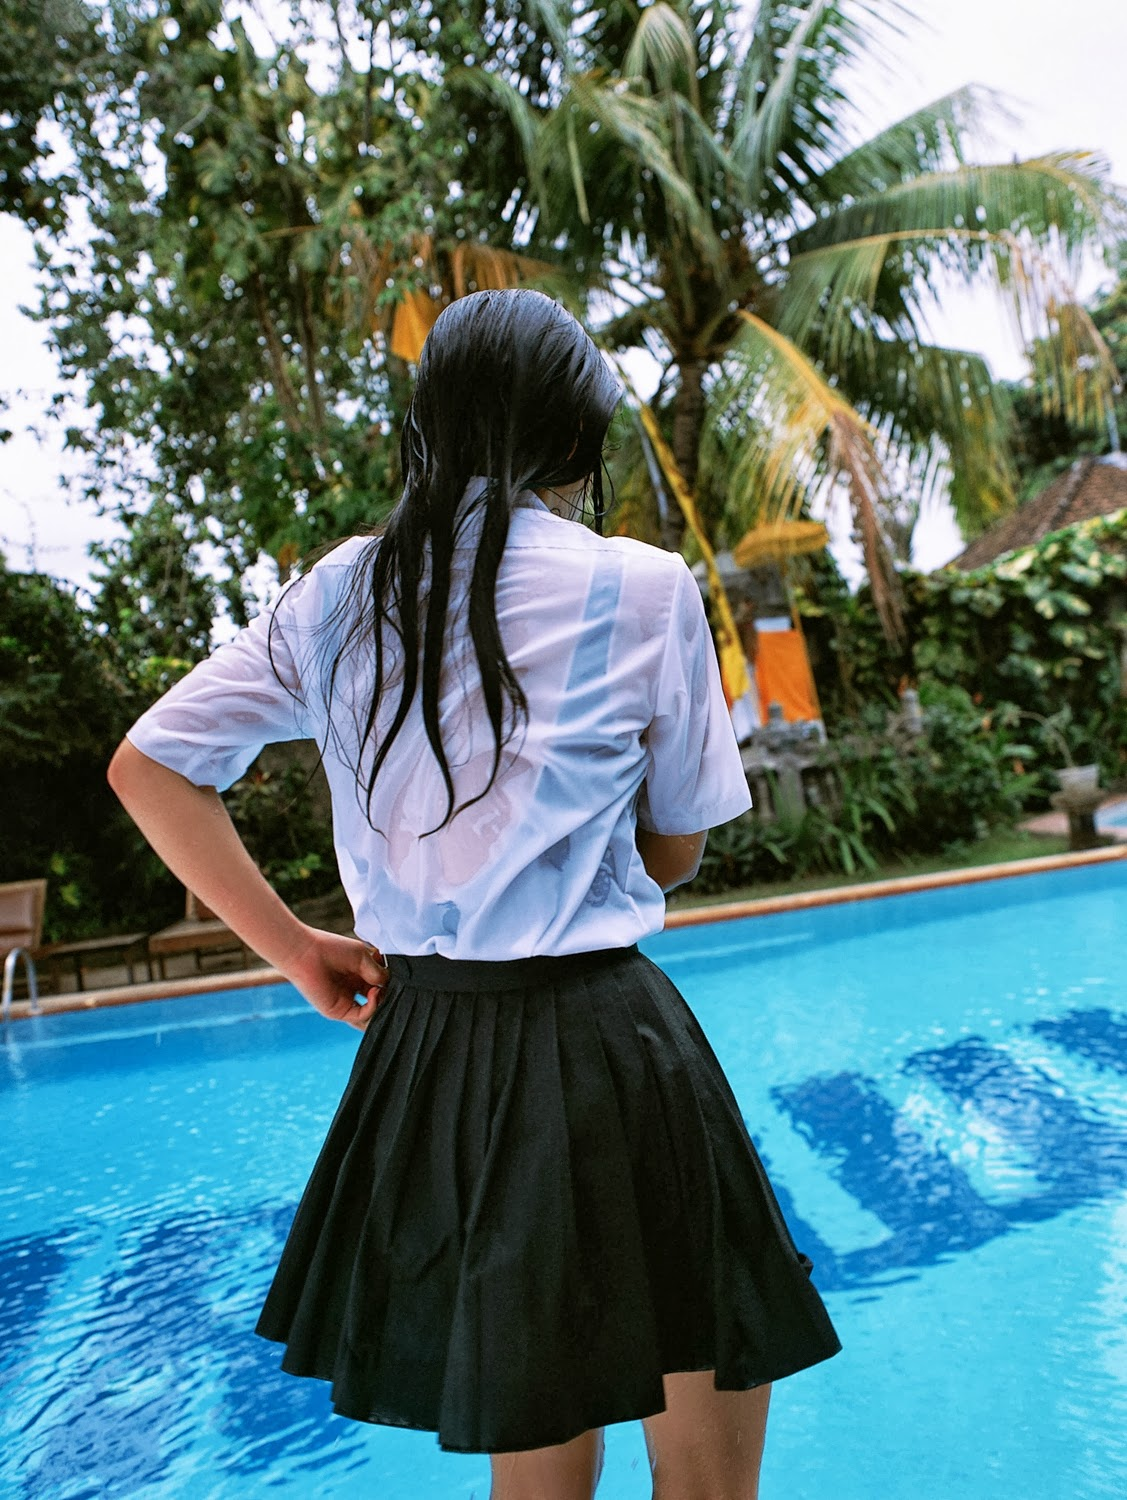 school girl in wet uniform